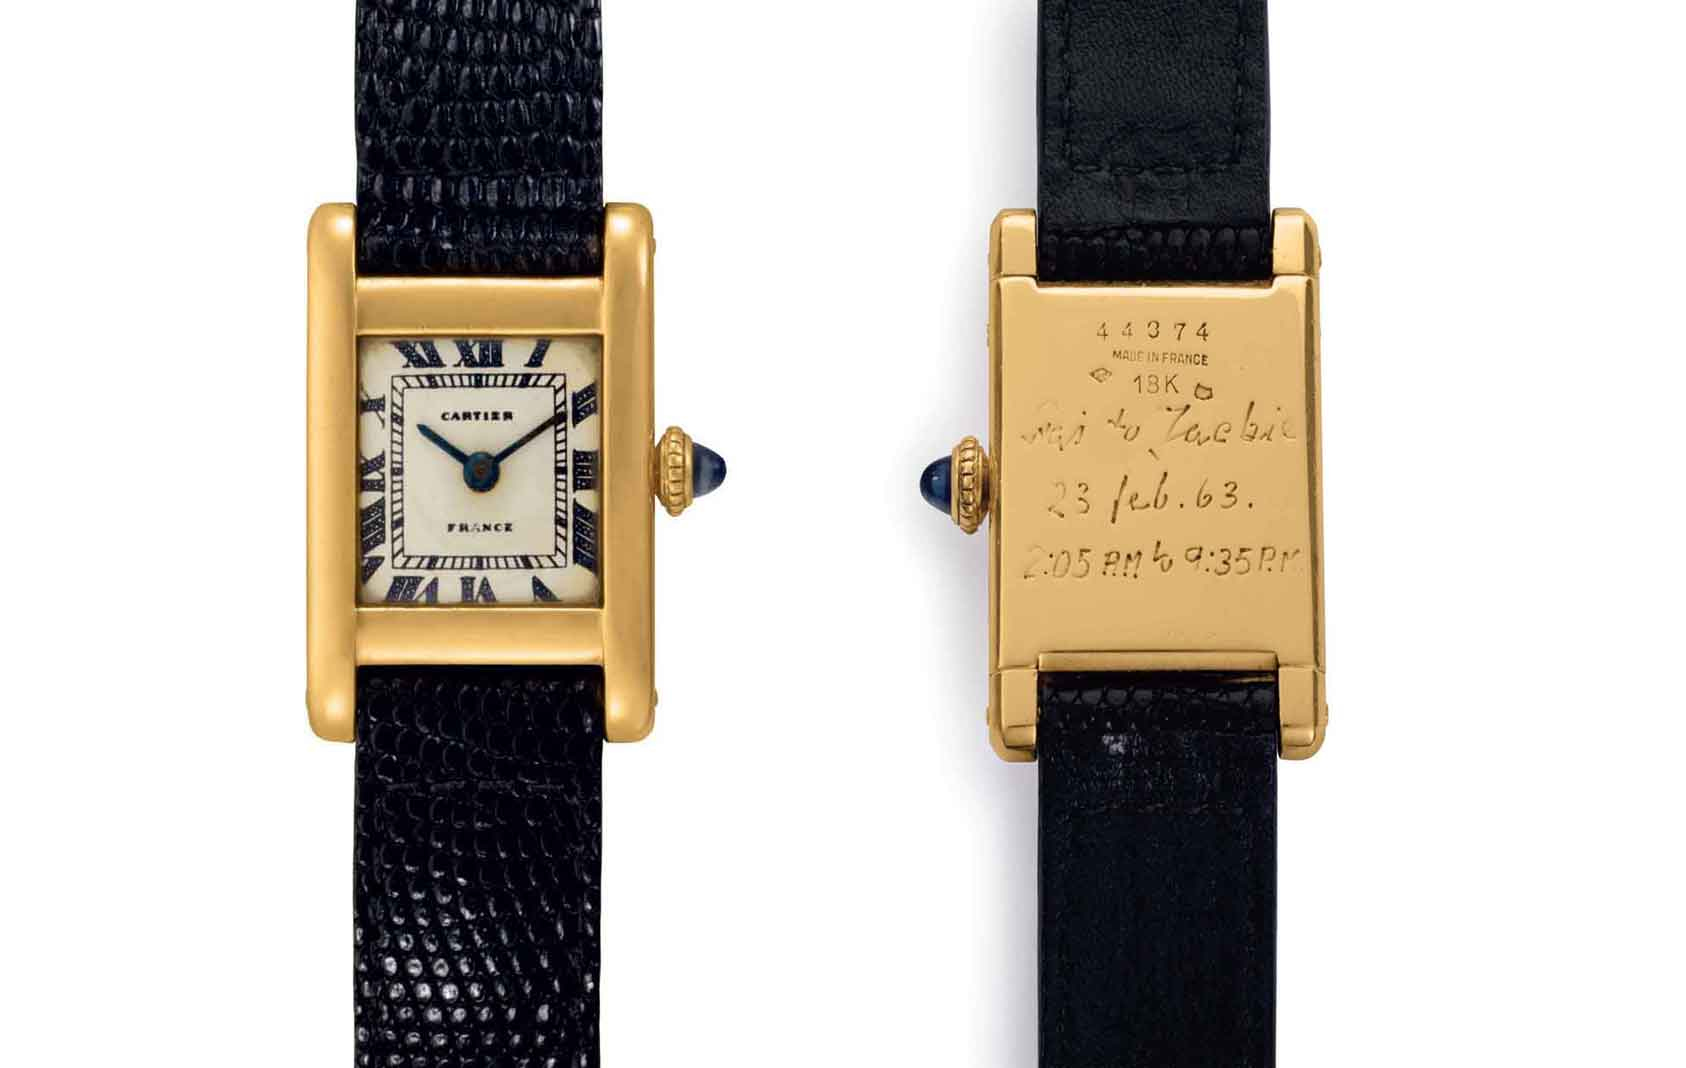 "A fine and historically important 18k gold square-shaped wristwatch, belonging to Jacqueline Kennedy Onassis. Signed Cartier, Tank Model, Movement No. 2'117'860, Case No. 44374, Manufactured in 1962. A gift from her brother-in-law Prince Stanislaw ""Stas"" Radziwill, it is engraved with the inscription ""Stas to Jackie, 23 Feb. 1963. 2.05am to 9.35am.""       Estimate: $60,000-120,000"